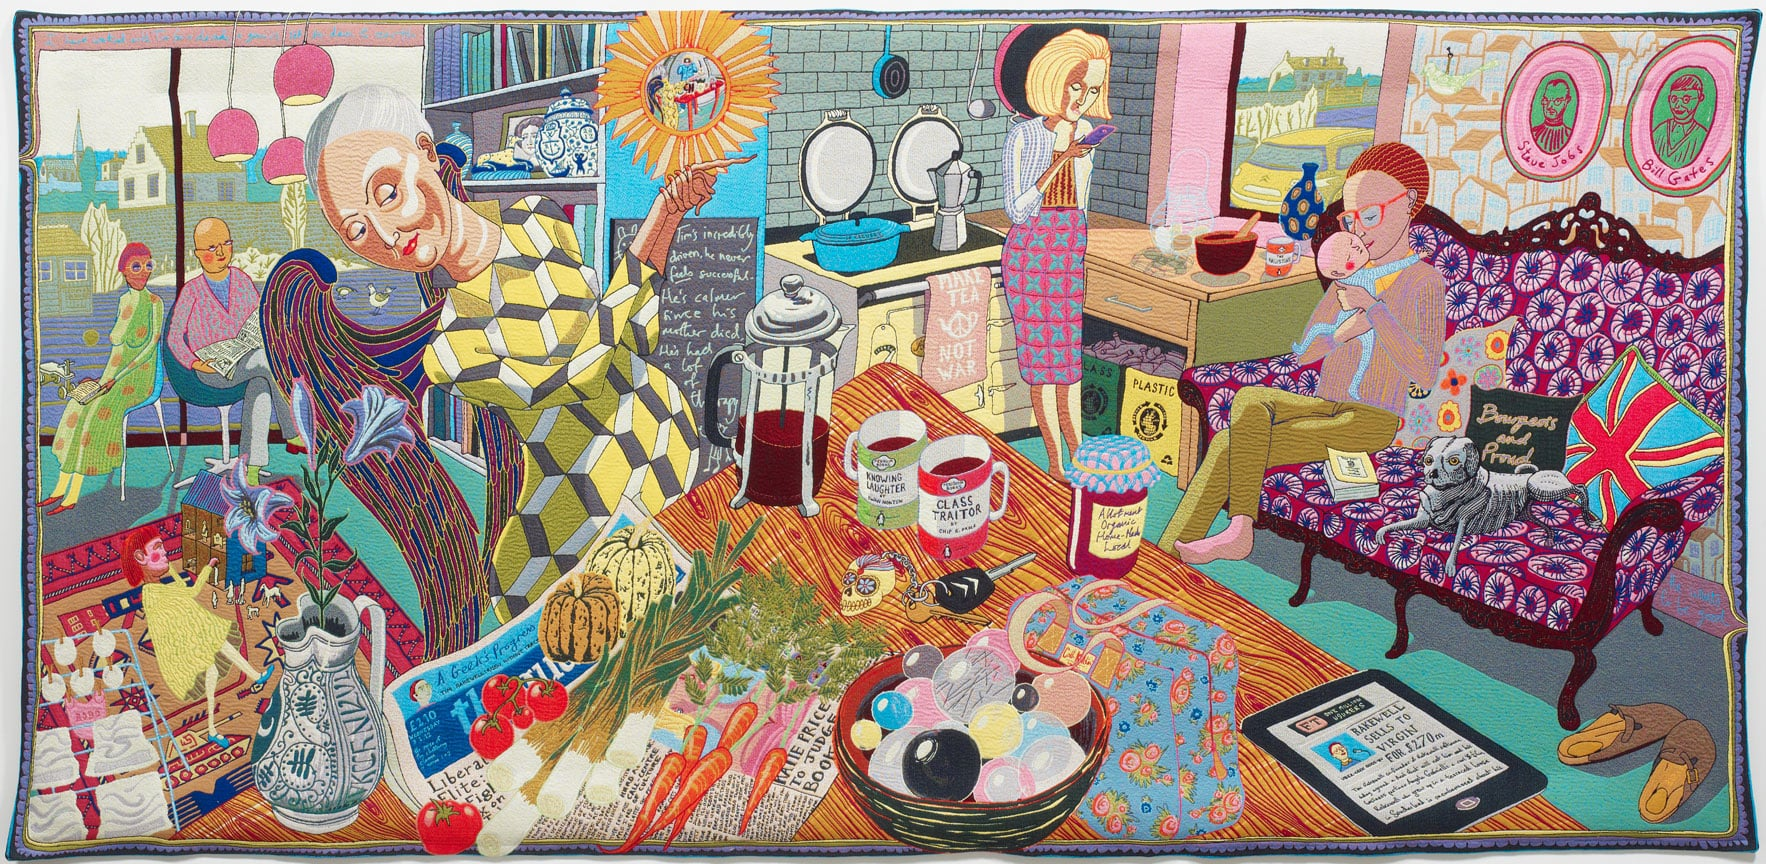 Grayson perry tapestries to tour news art fund for Newspaper wallpaper for sale